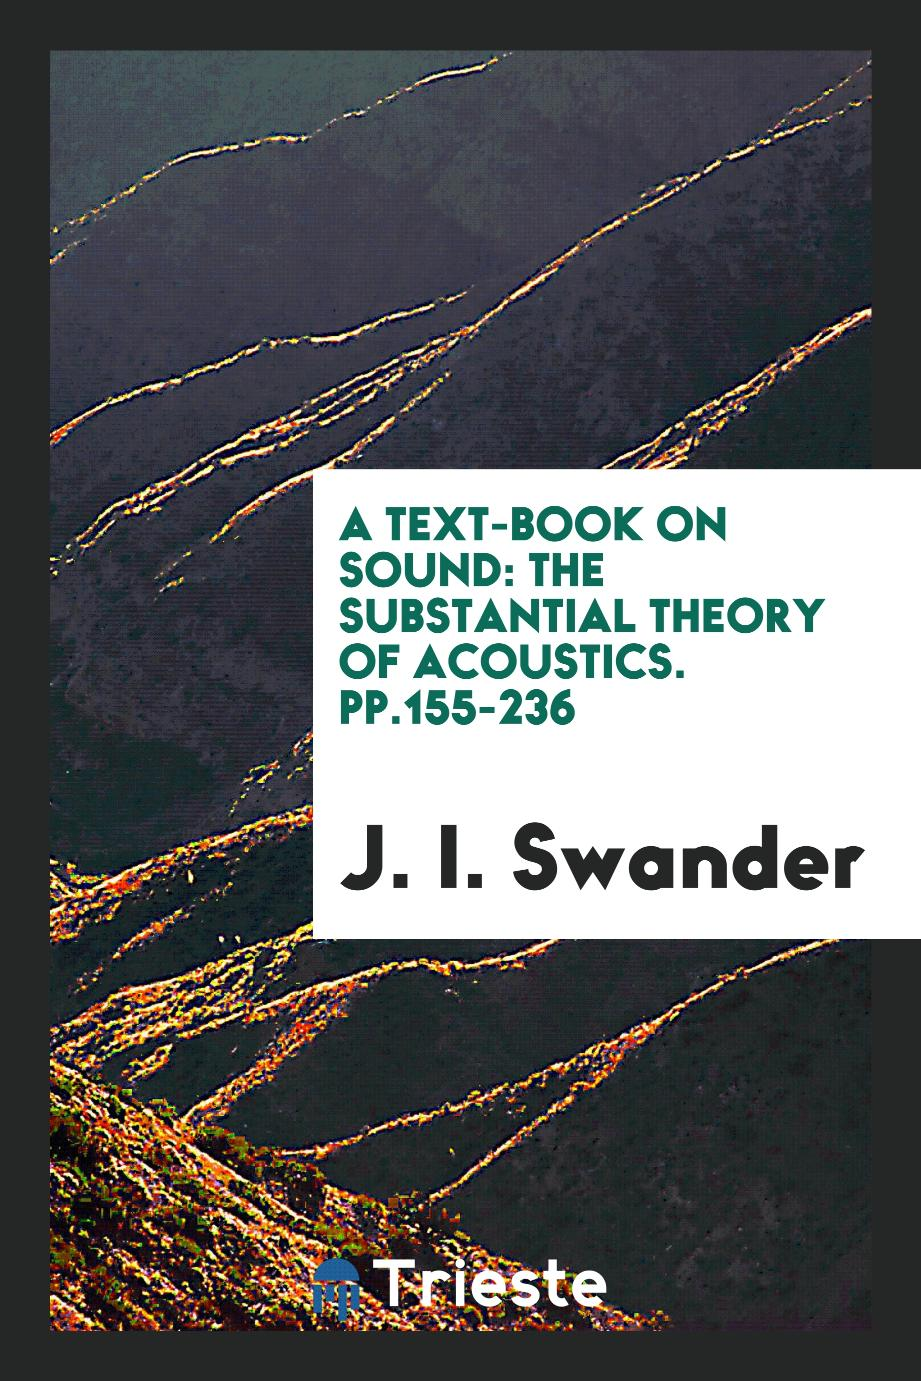 A Text-Book on Sound: The Substantial Theory of Acoustics. pp.155-236